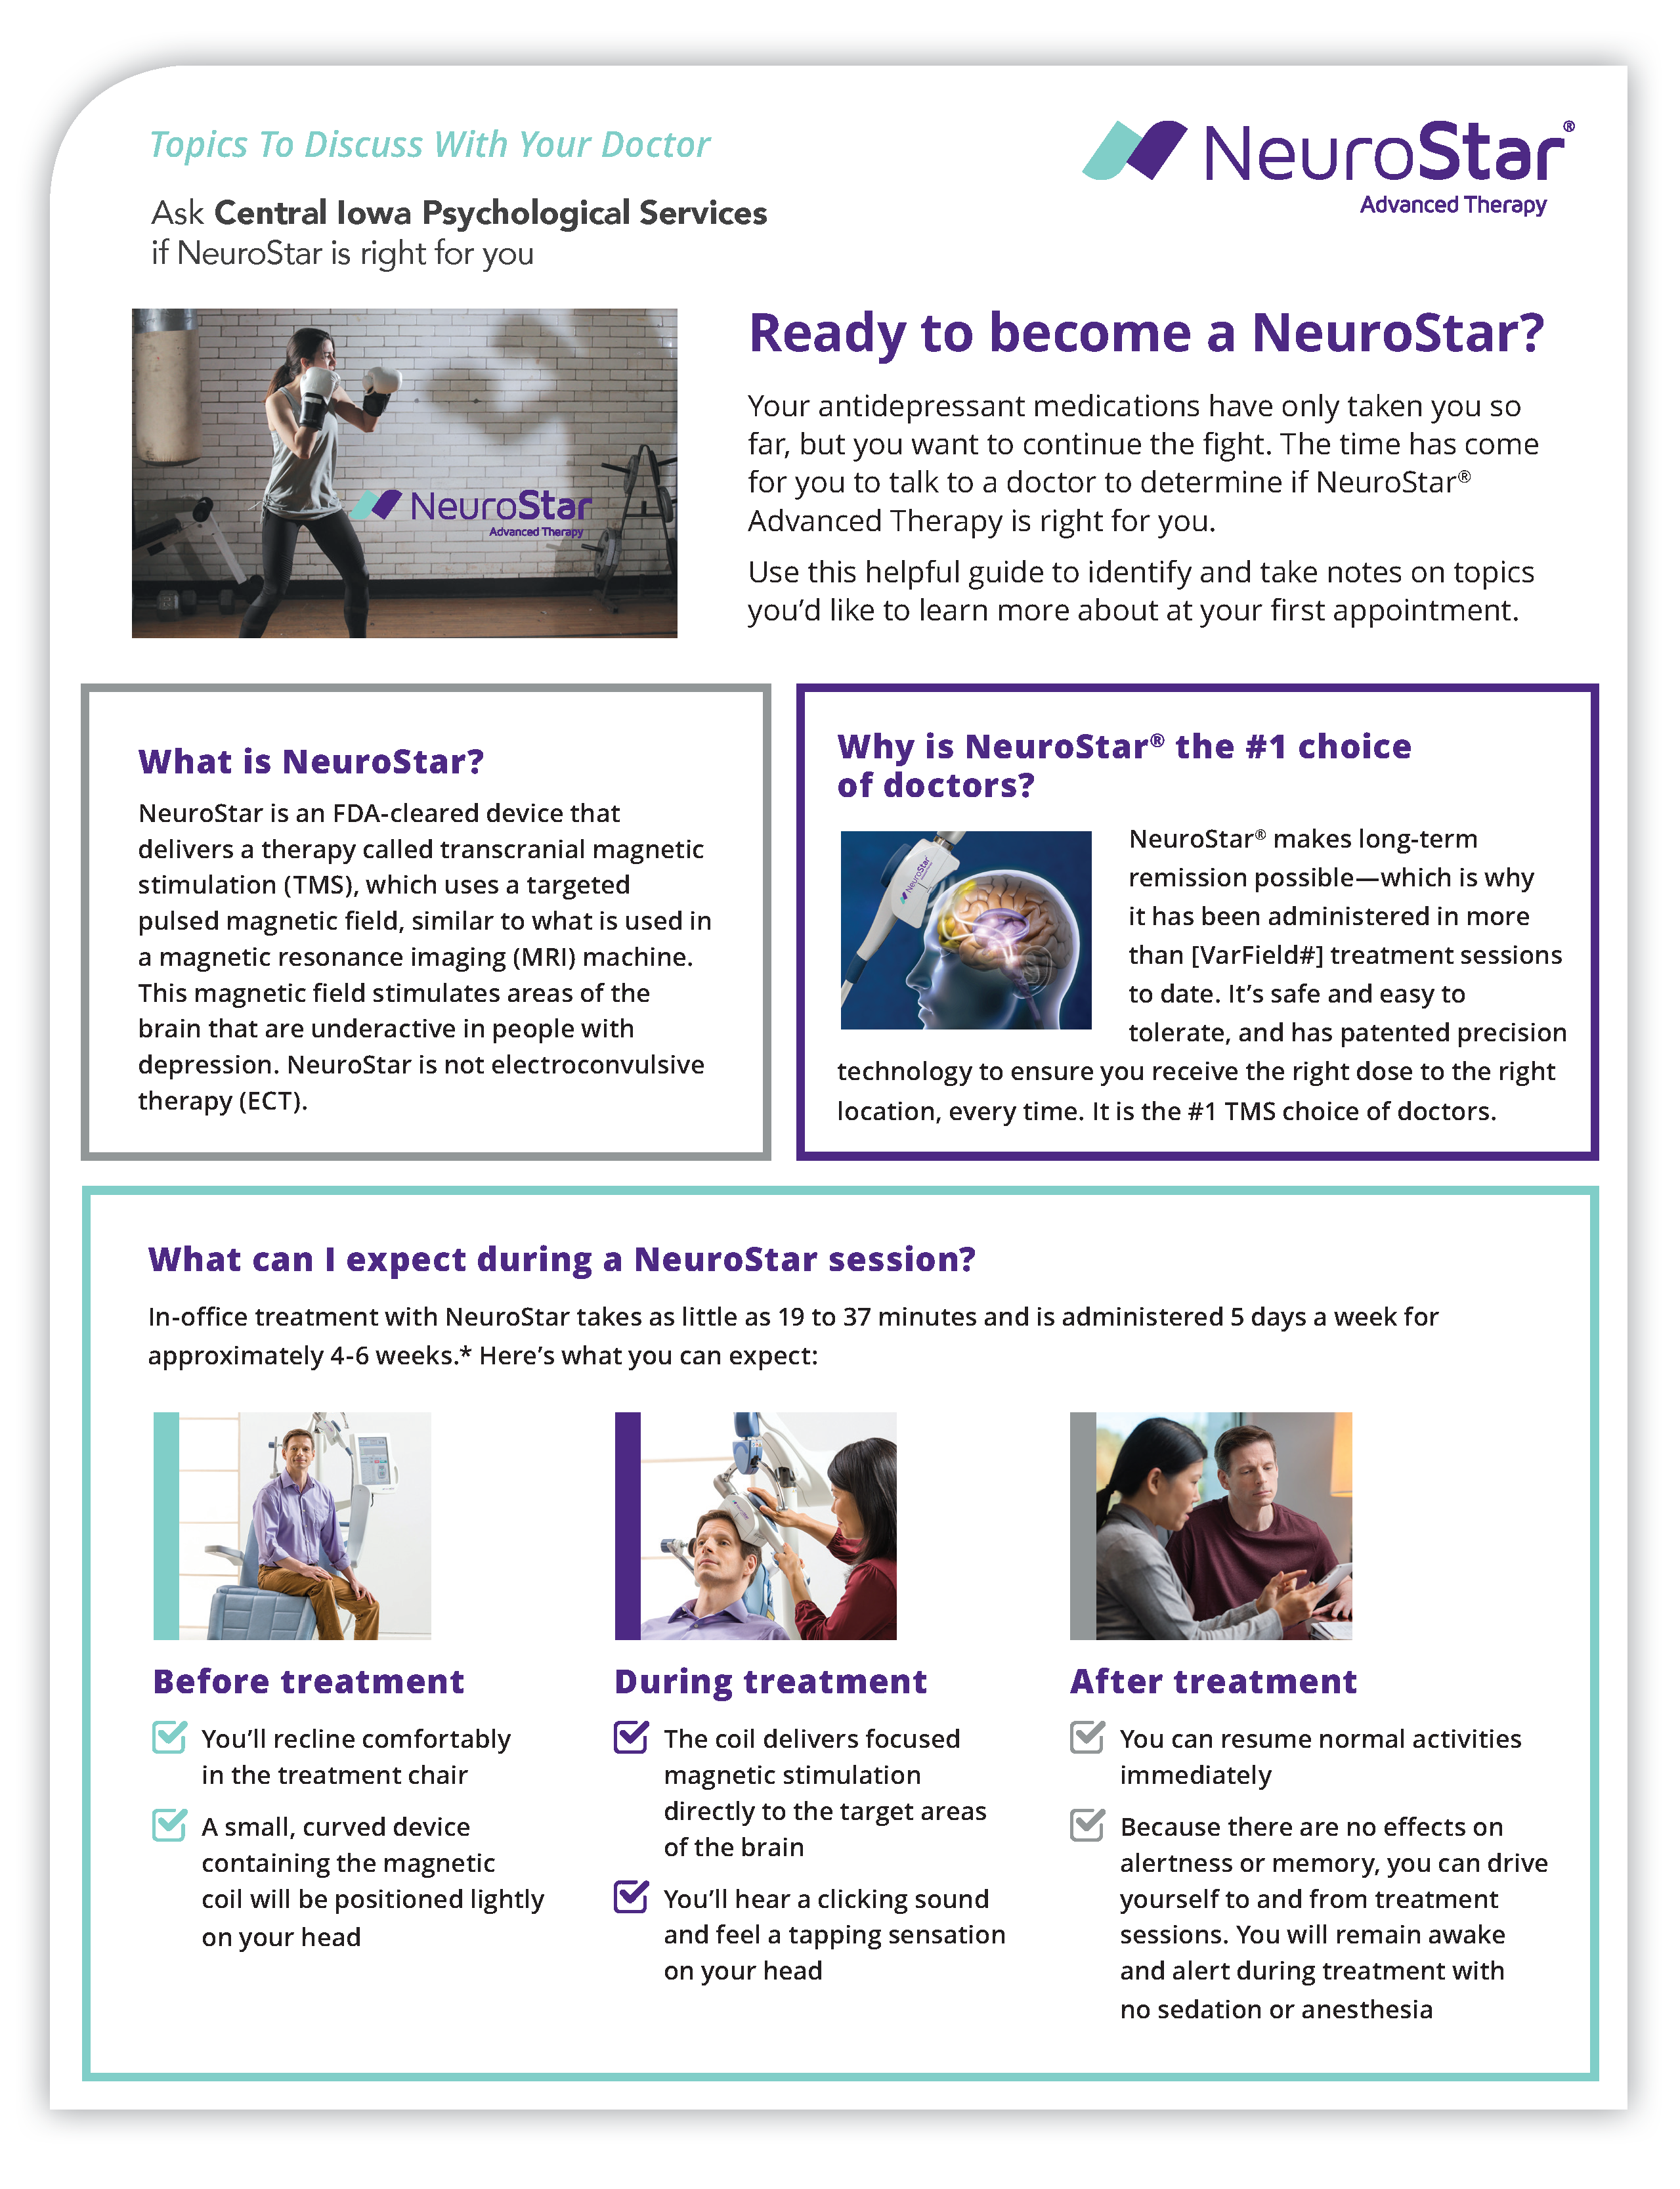 NeuroStar TMS Therapy® Patient Guide for Treating Depression